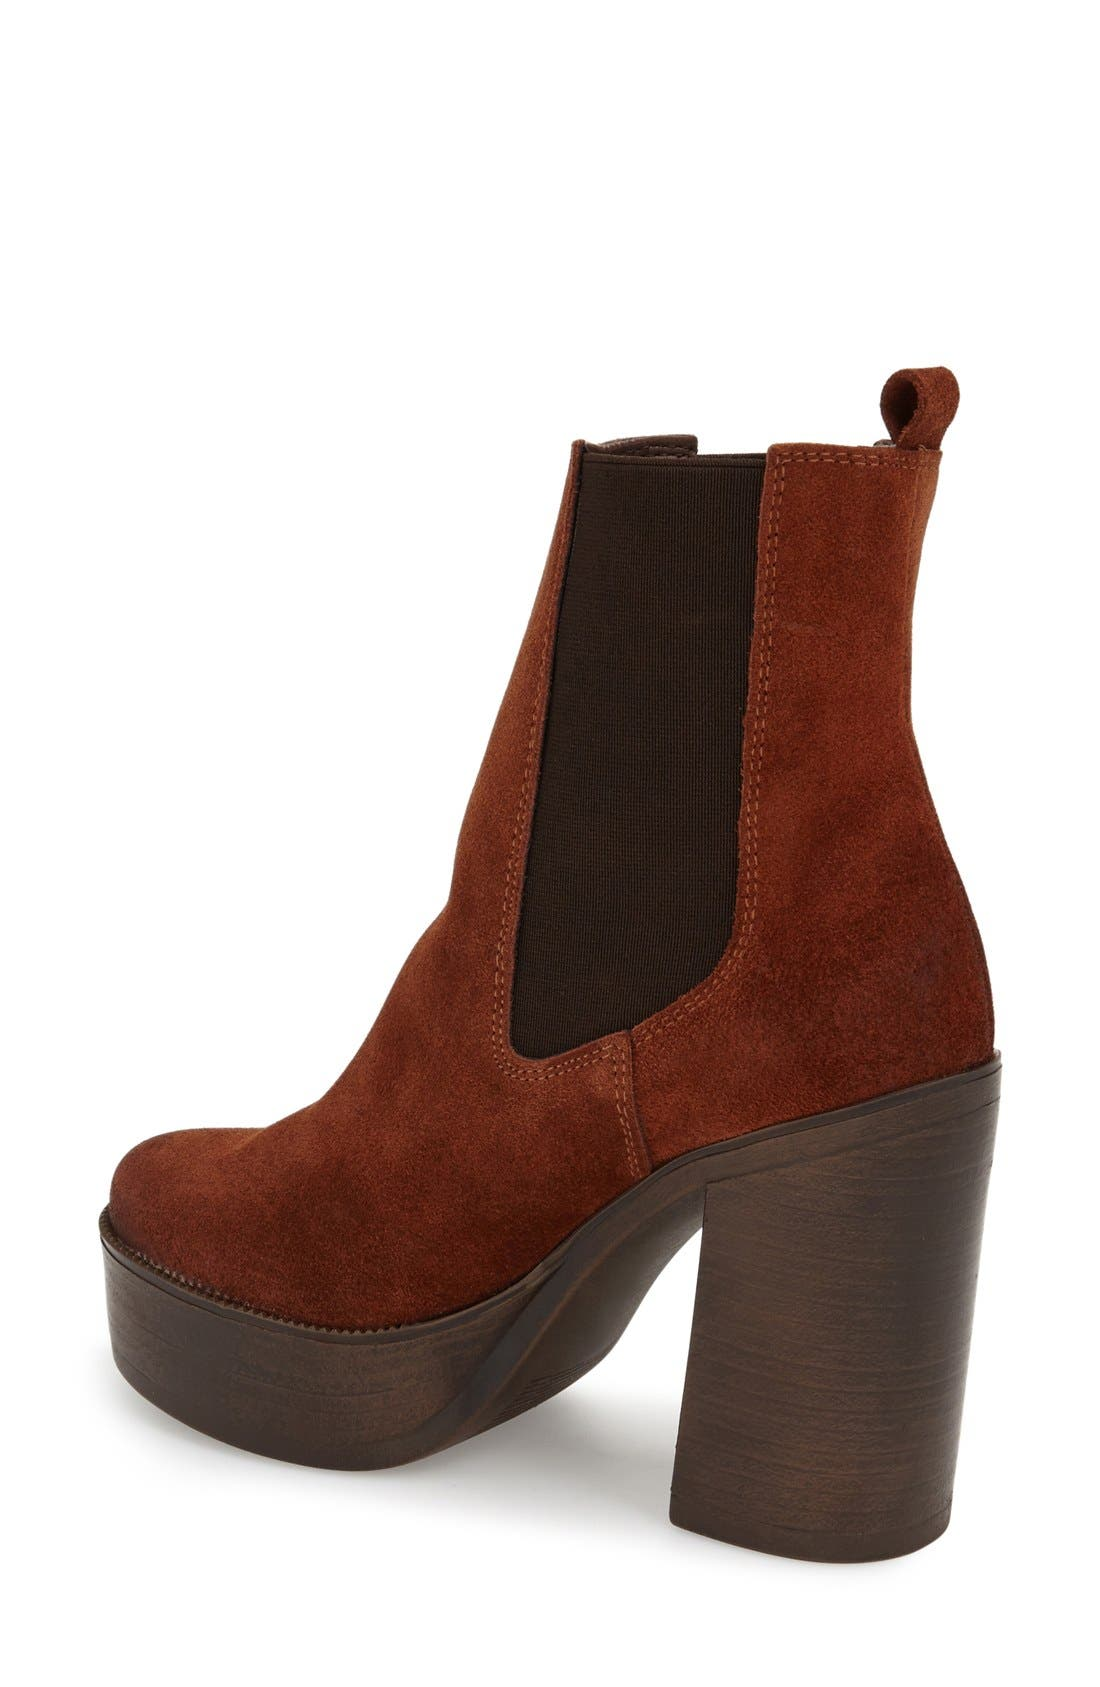 Alternate Image 2  - Topshop 'Holly '70s' Chunky Heel Ankle Boot (Women)